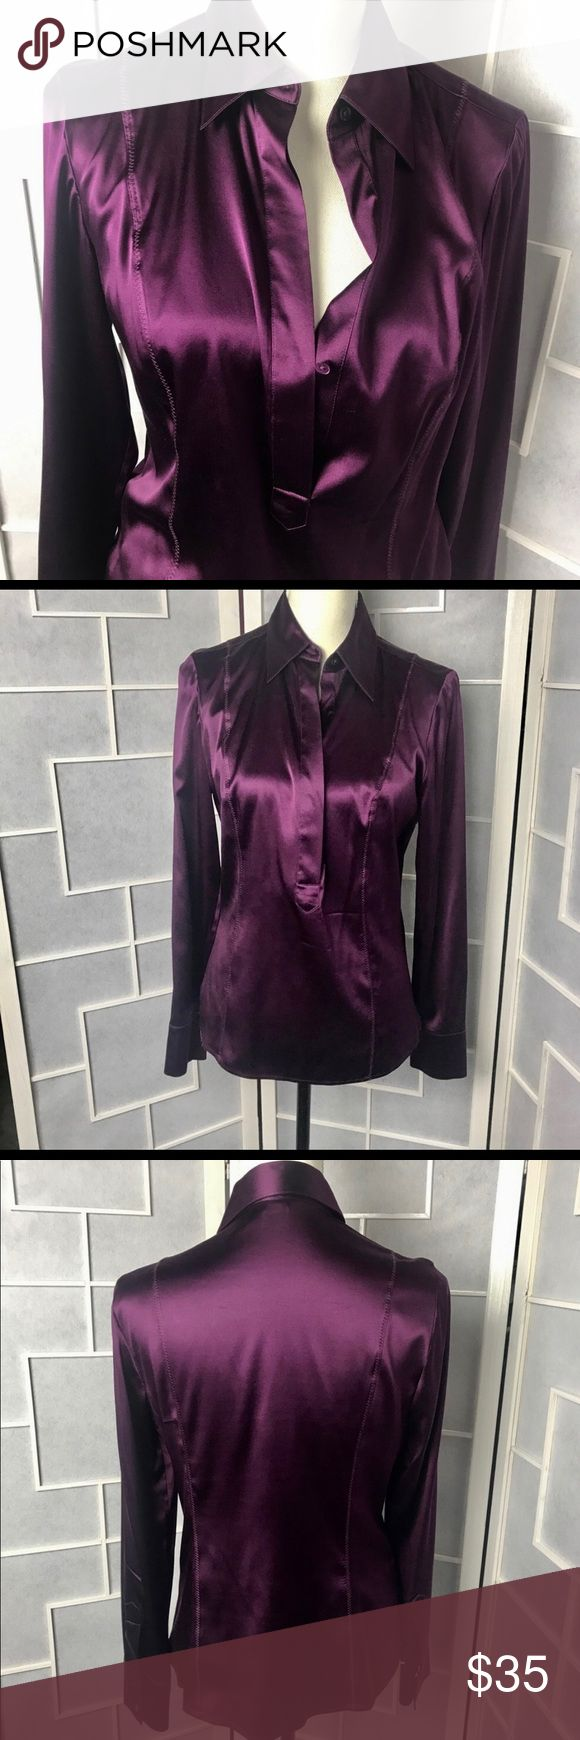 Gorgeous Ann Taylor Royal purple silk blouse Gorgeous Ann Taylor  royal purple silk blouse  Size 6   Worn once by actress on set and cleaned. Retail $98.00. I'm a professional makeup artist and wardrobe stylist for film and print. I'm moving so I'm selling all my favorites. Come follow me and see my antics on film on my instagram under my company Bombshell Factory Ann Taylor Tops Blouses